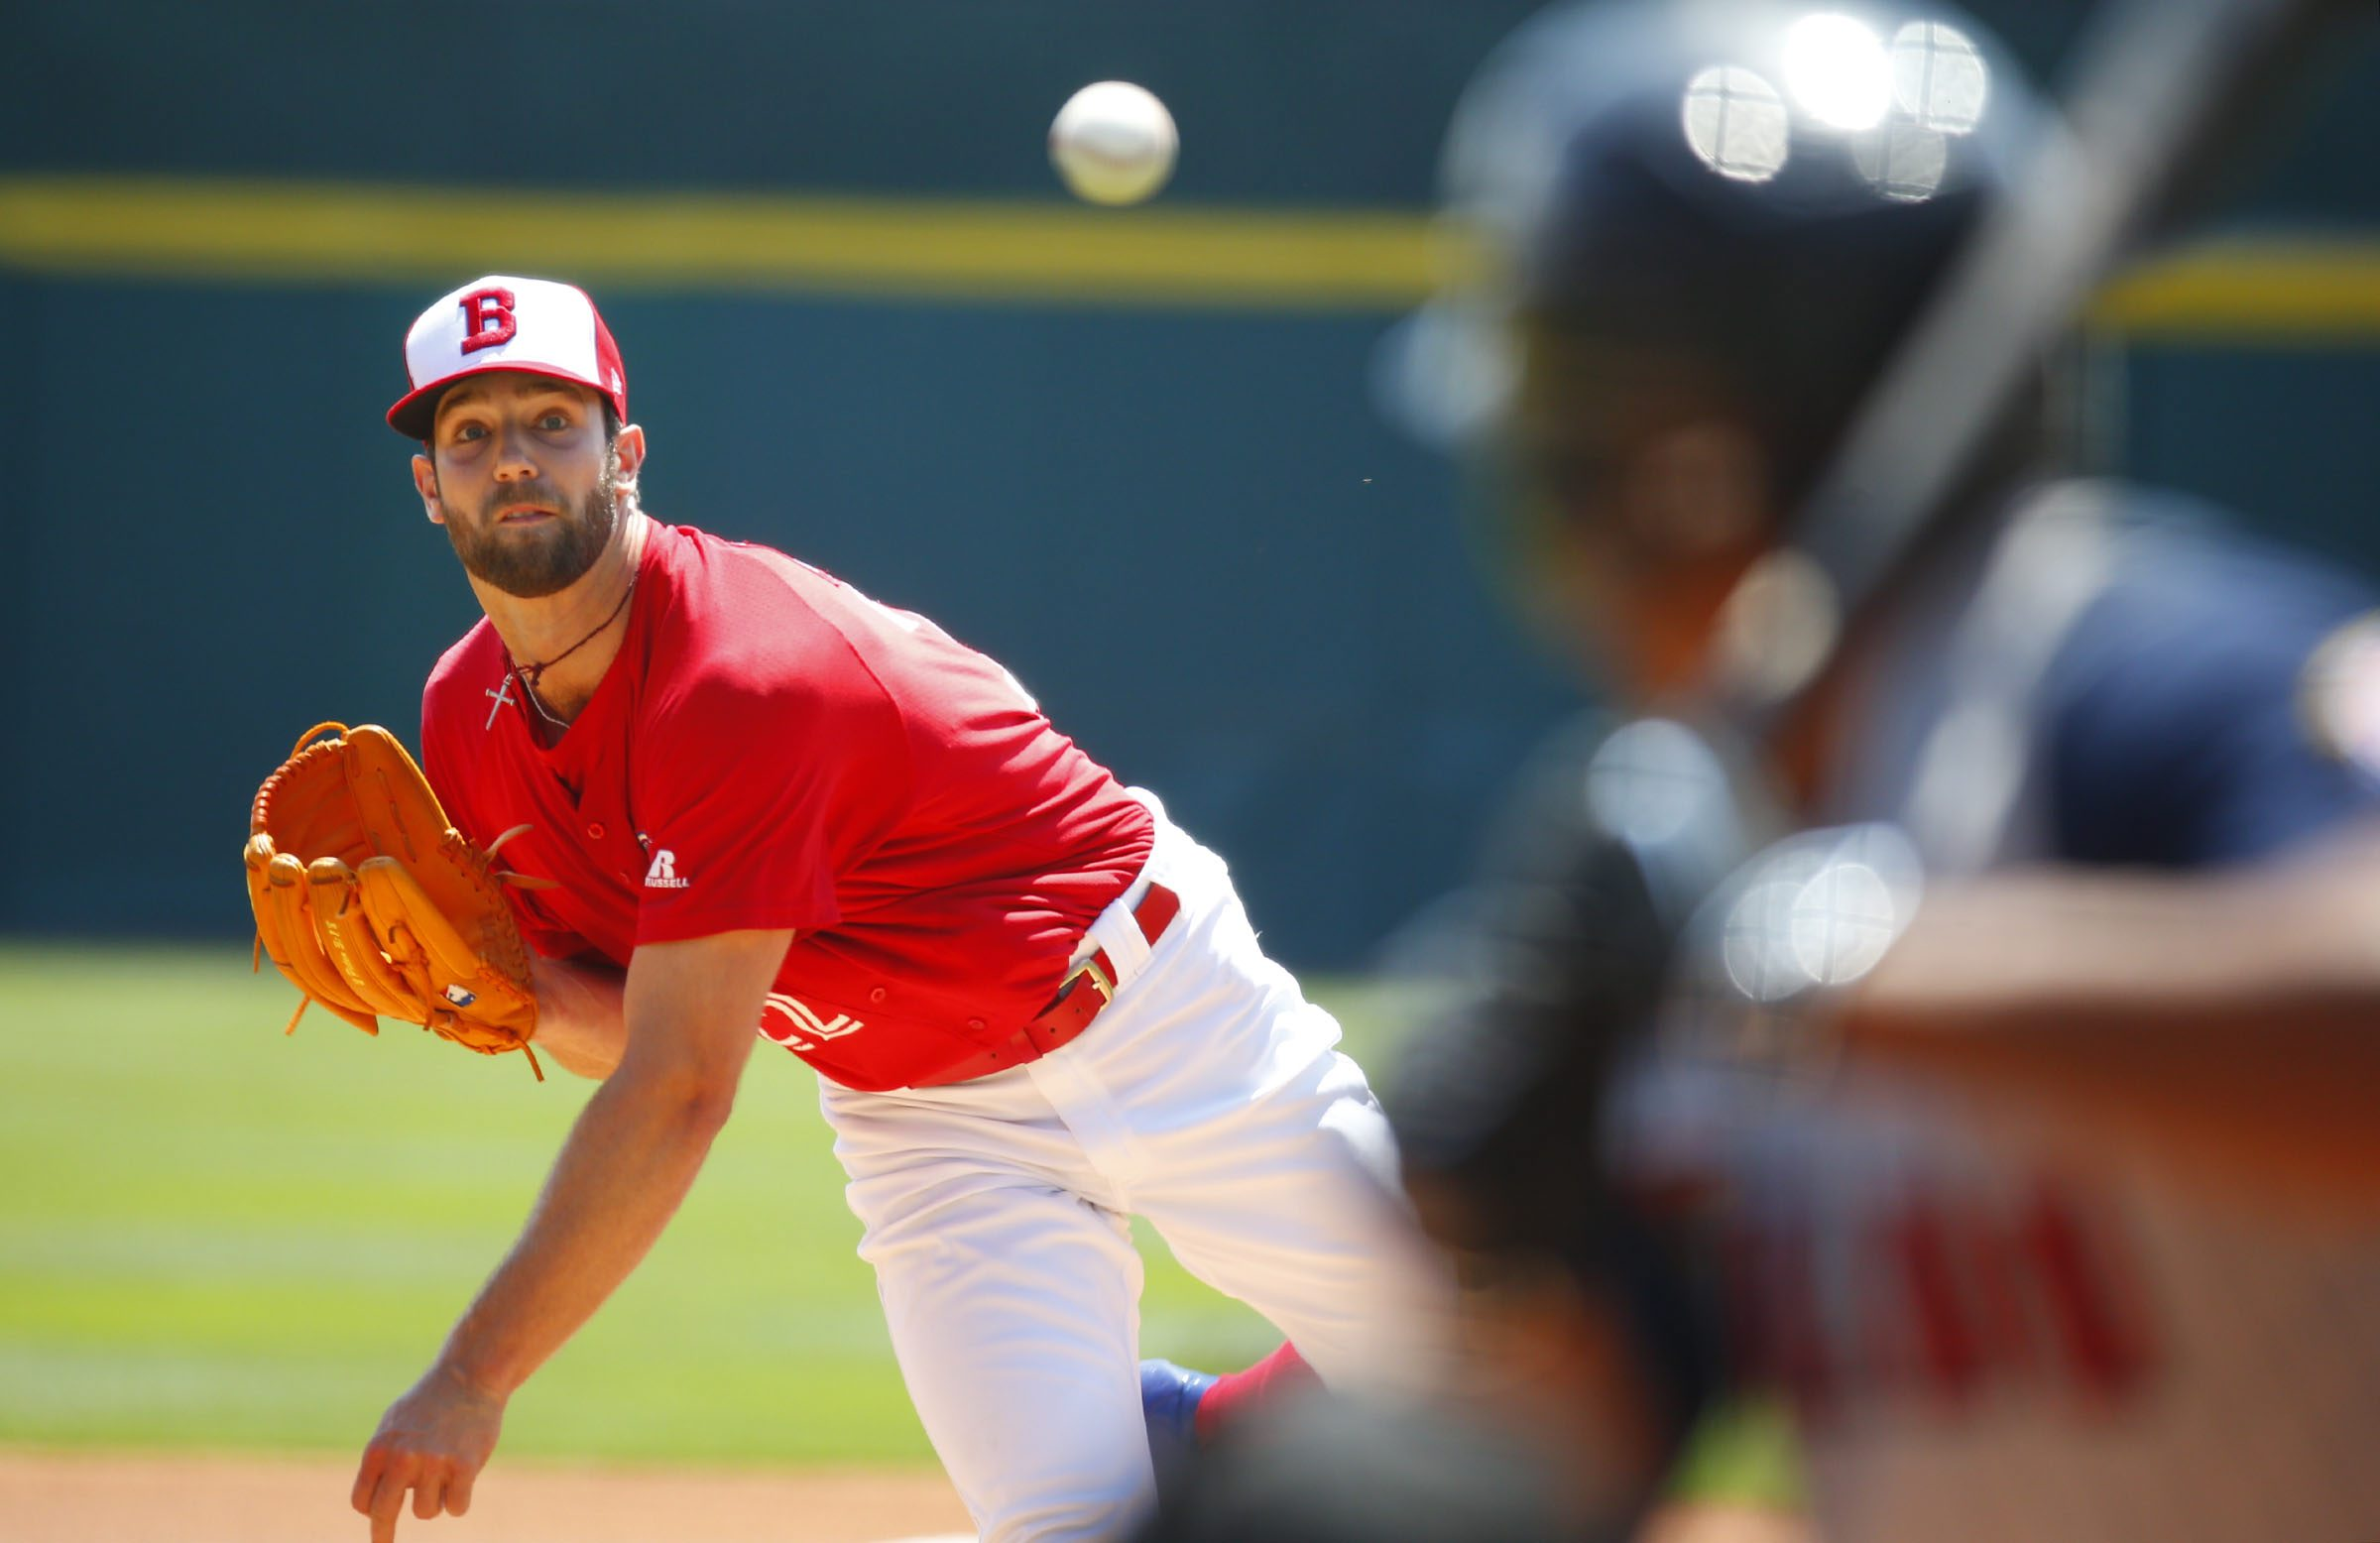 Bisons left-hander Daniel Norris pitched six innings Sunday at Coca-Cola Field as he works to earn a return to the Blue Jays  starting rotation.